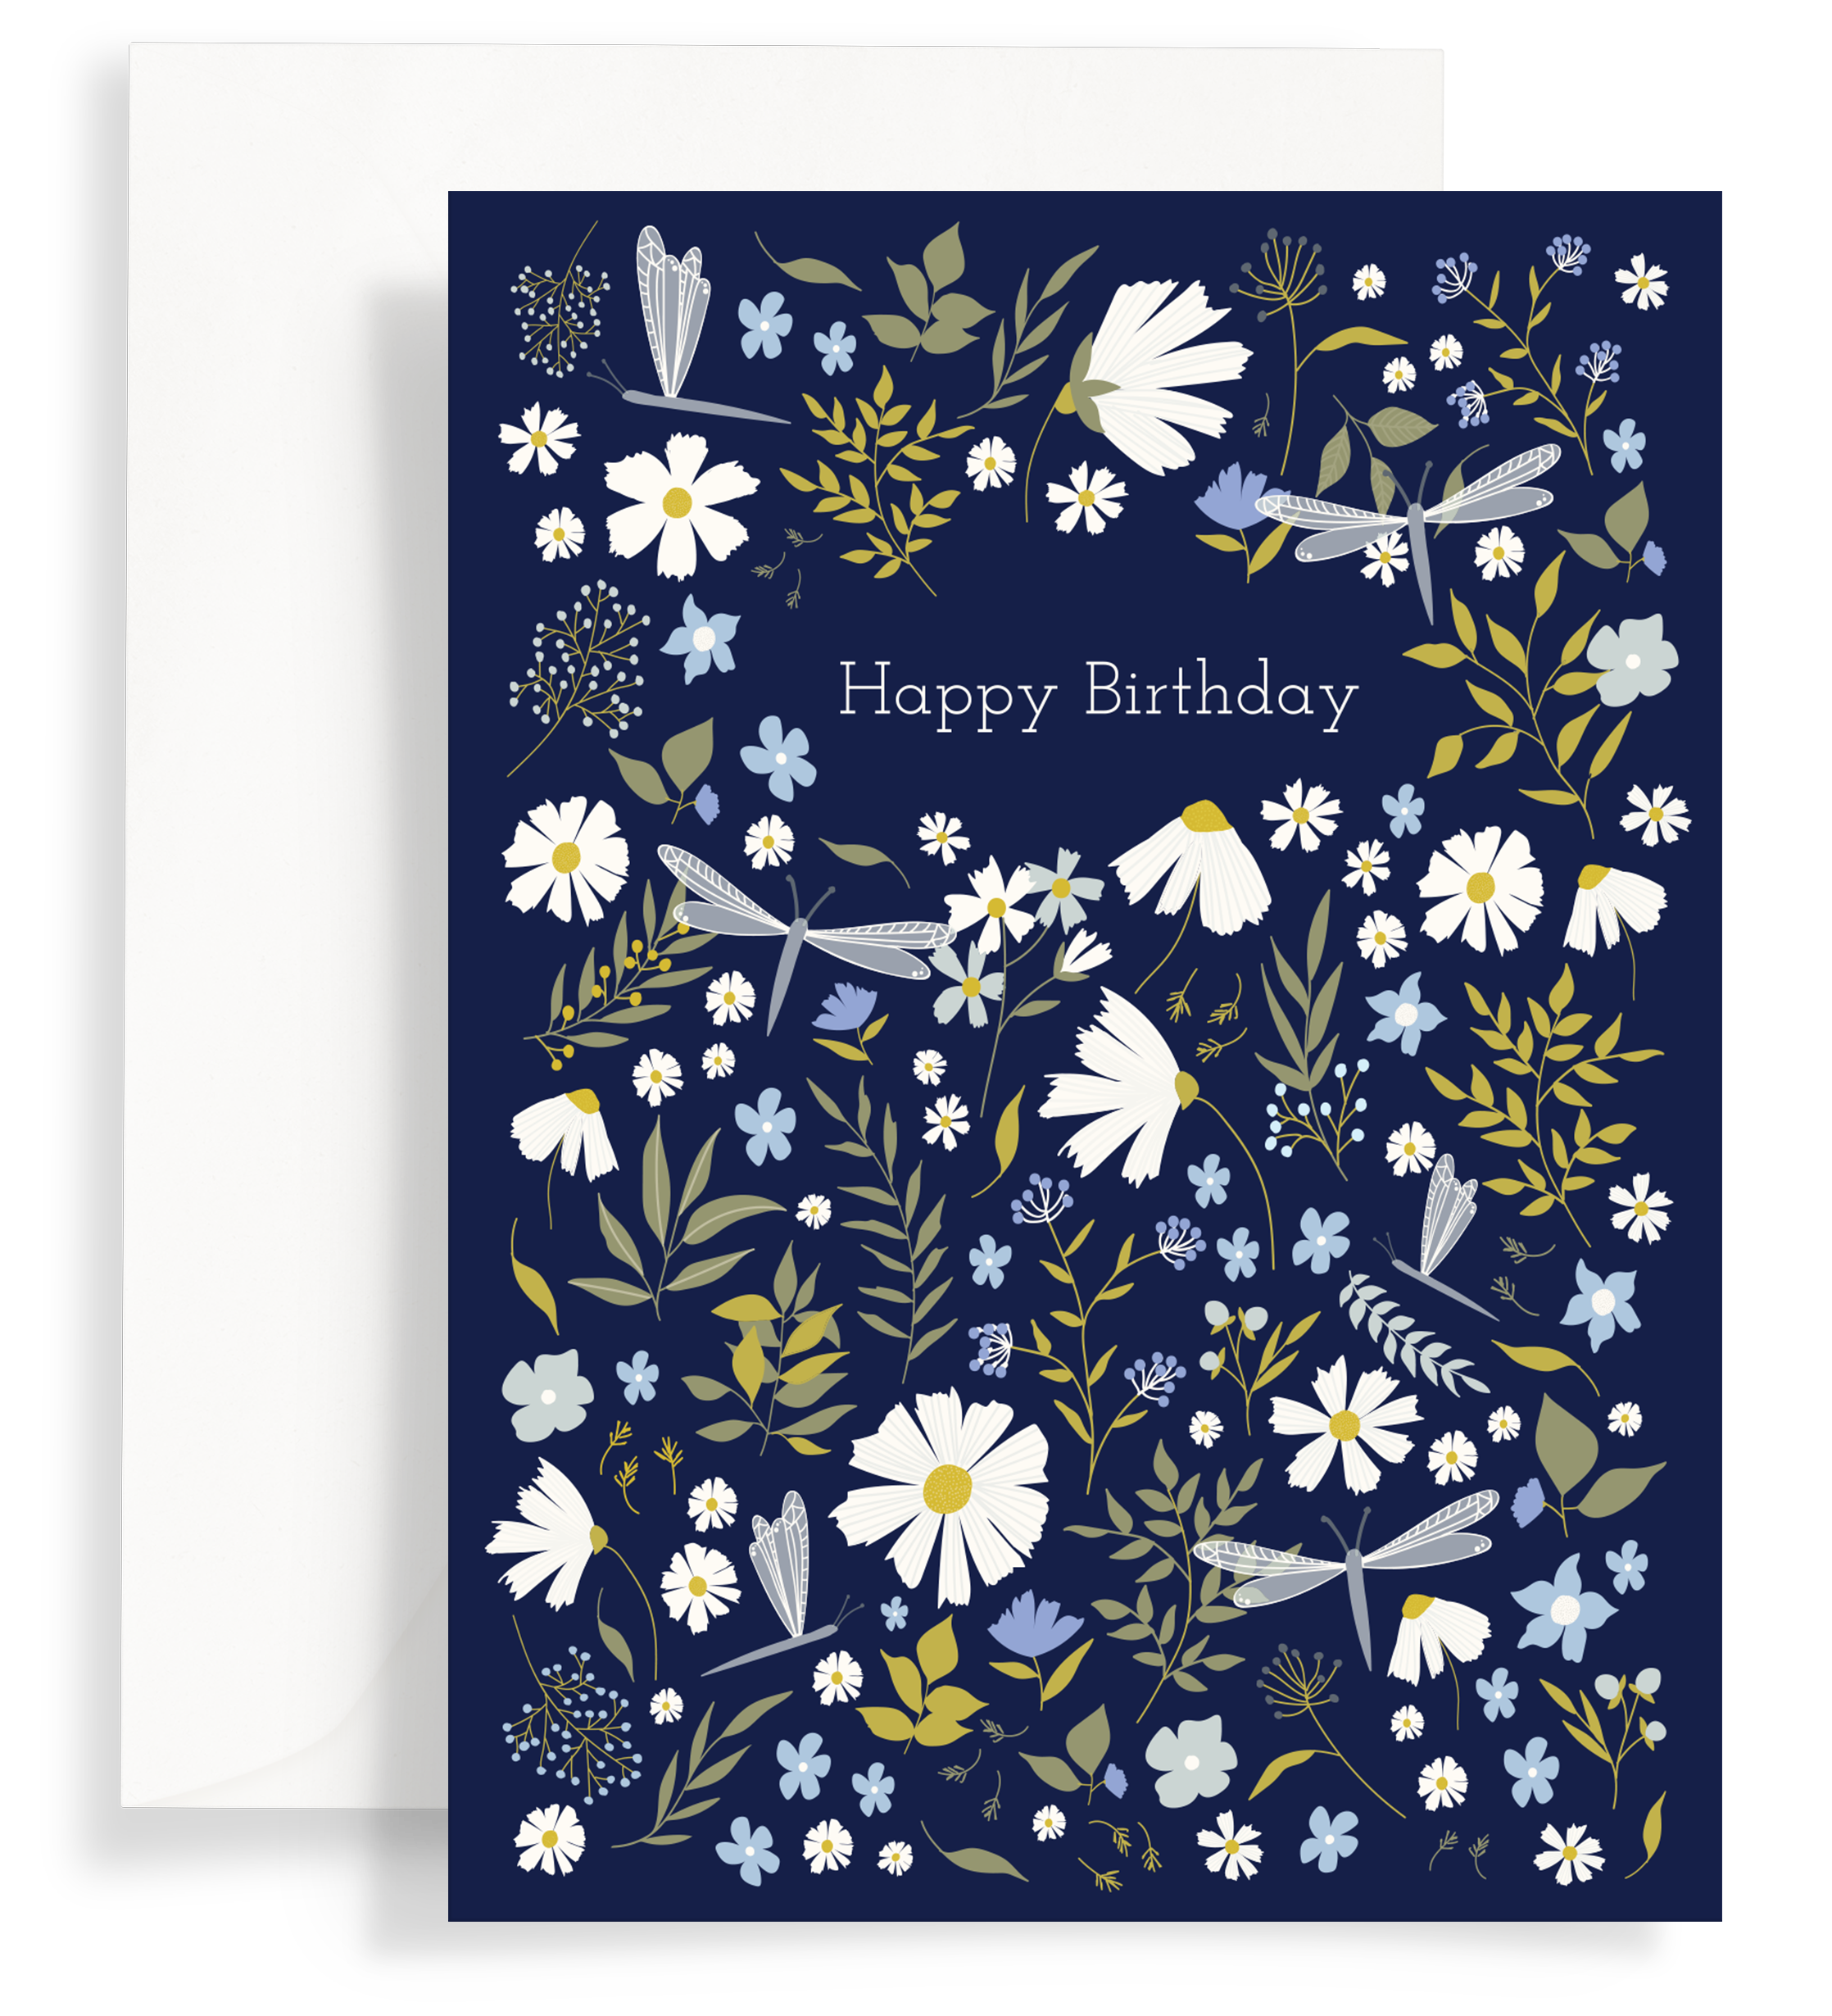 Illustrated greeting card with a beautiful daisies and dragonflies pattern on a dark navy background. Text says 'happy birthday'